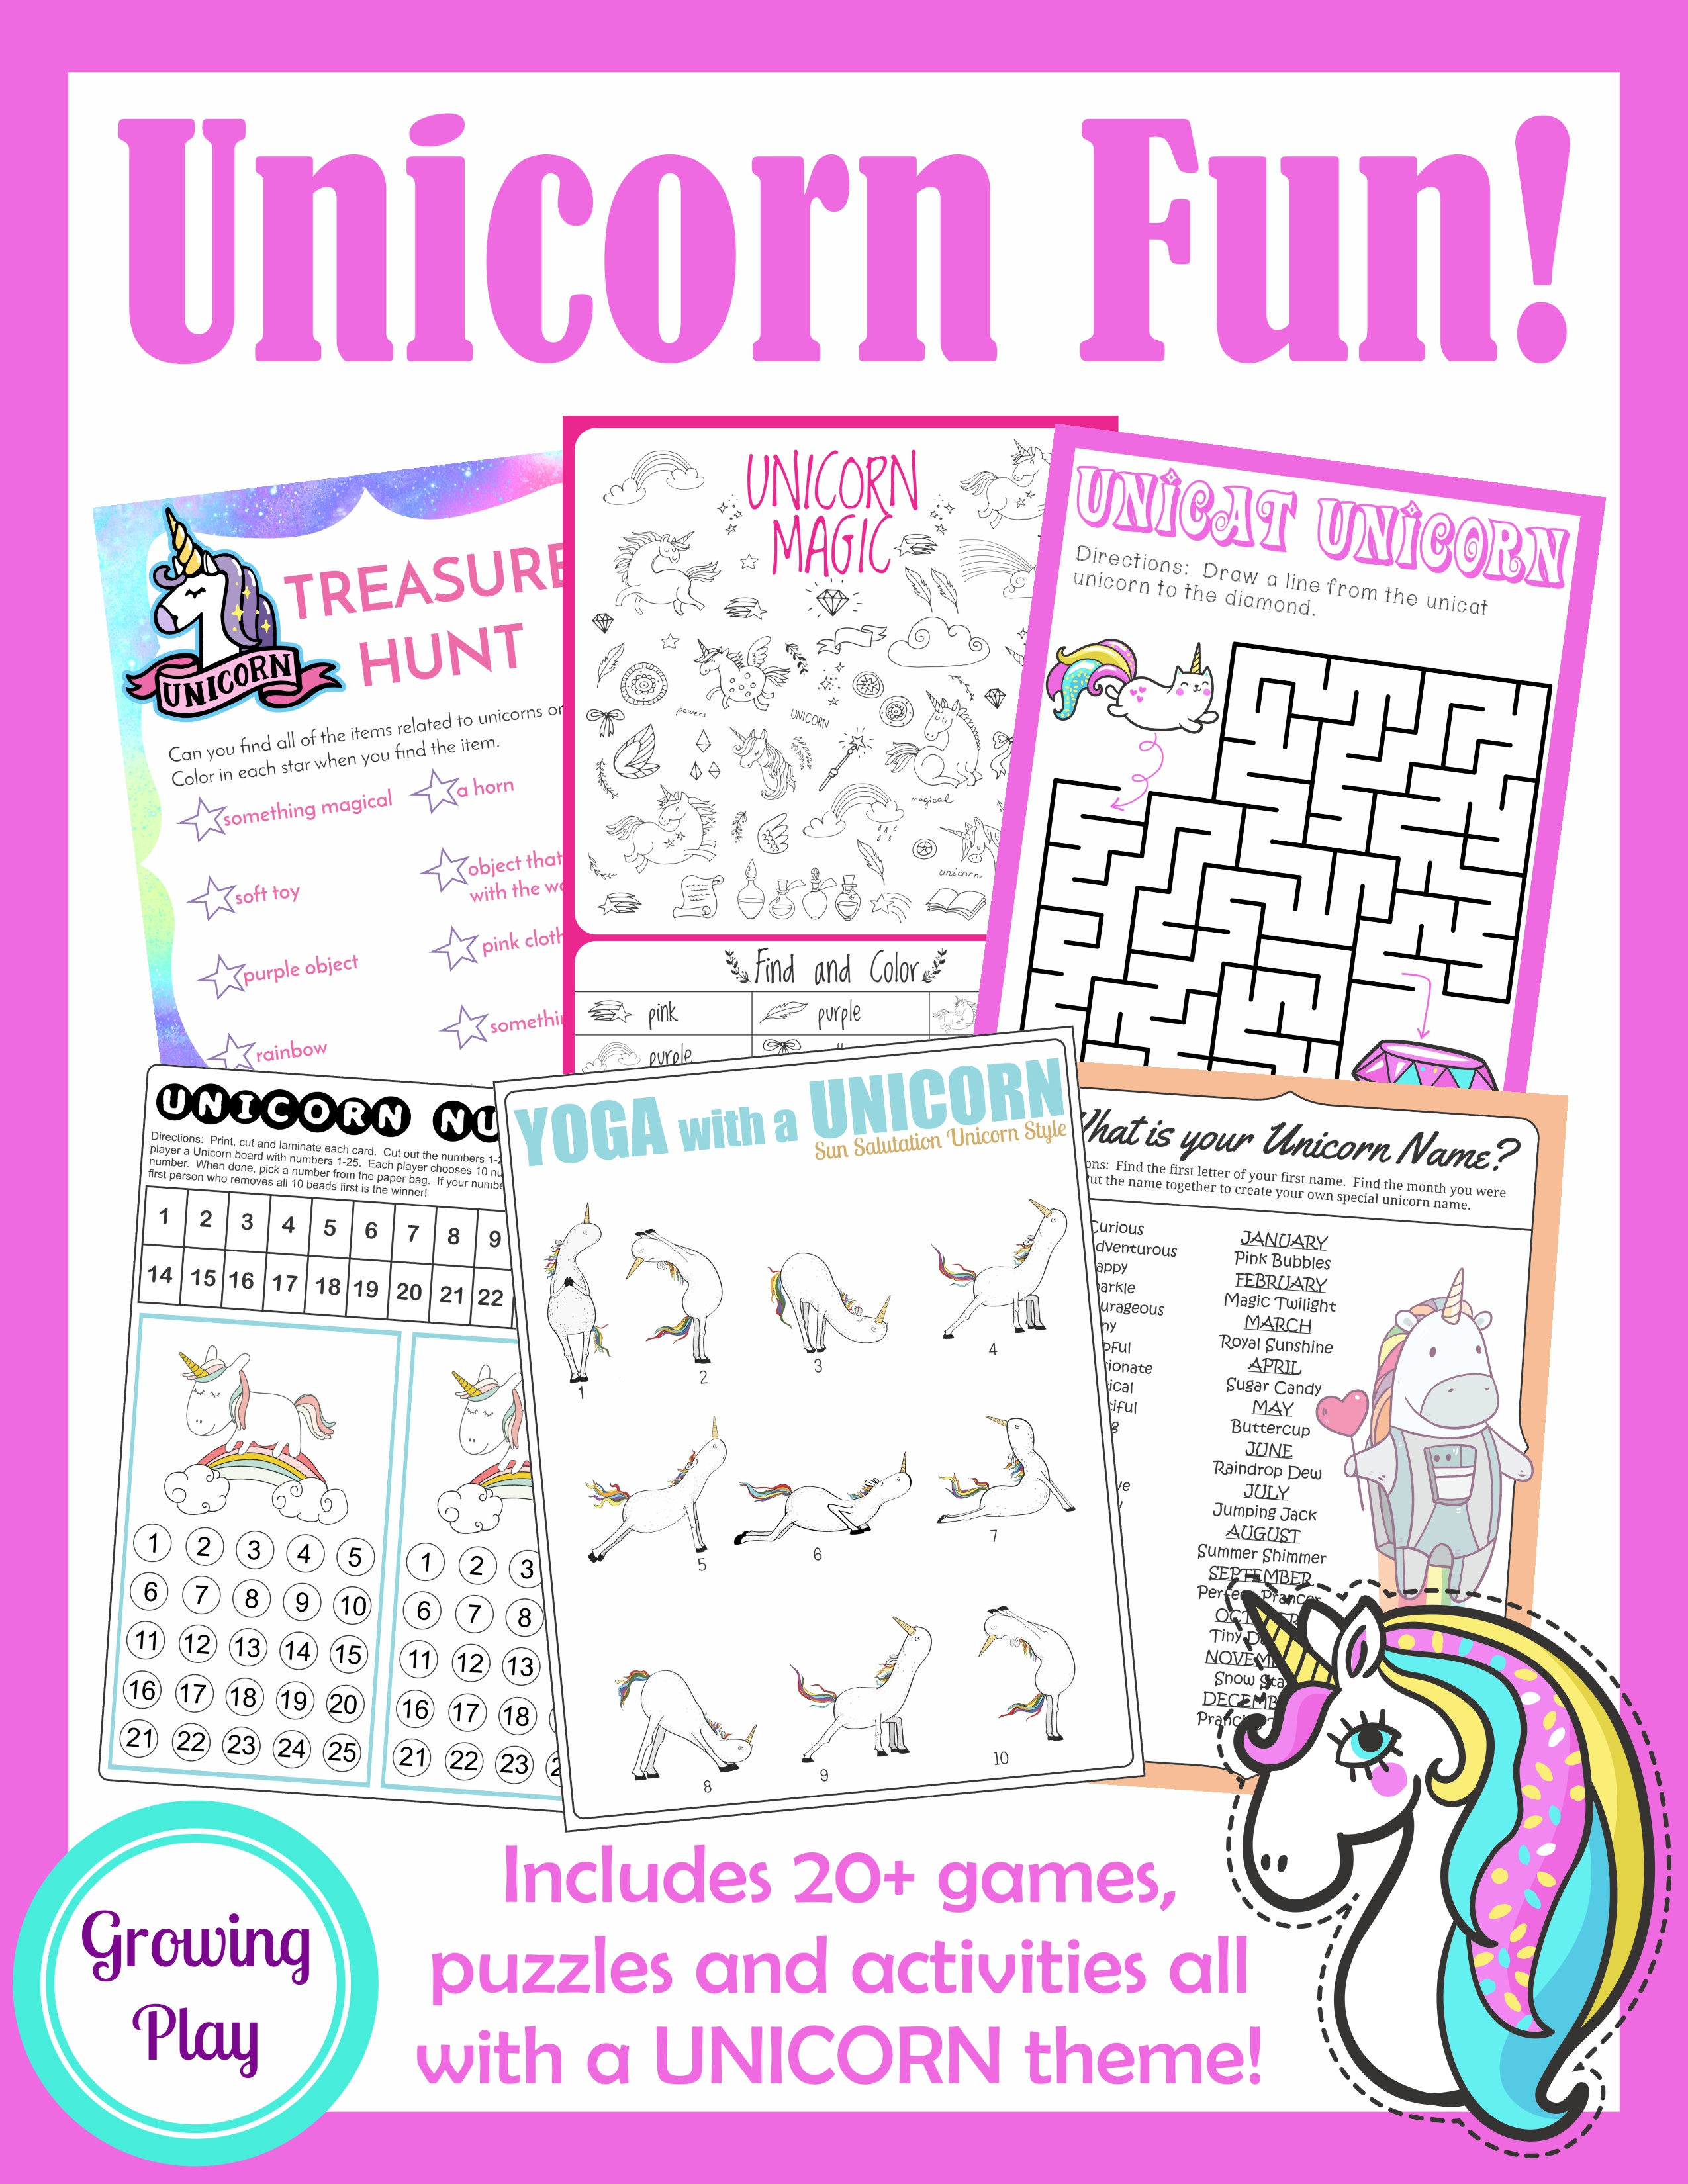 Unicorn Mini Journal - Free Printable - Growing Play - Printable Unicorn Puzzle